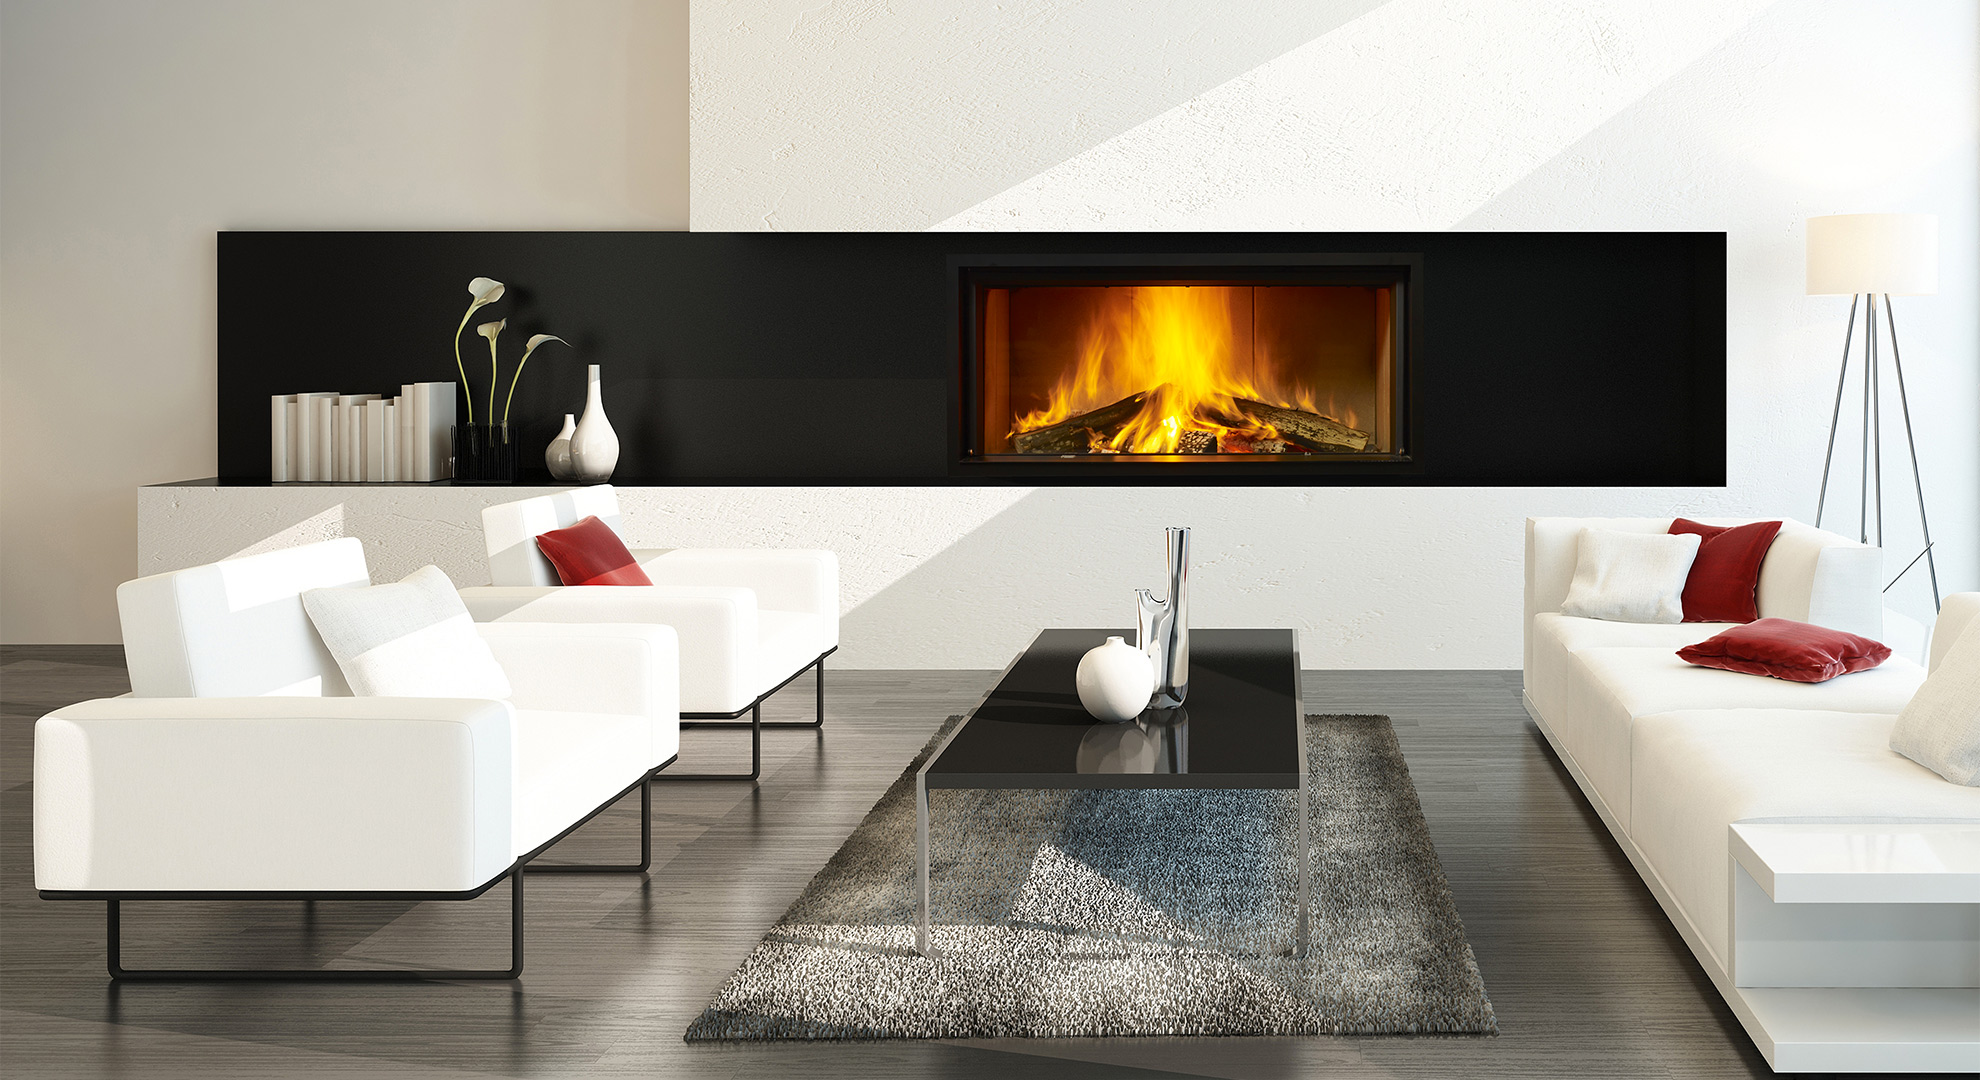 atry home l illusion d un vrai feu de chemin e avec l lectrique 3d vapeur. Black Bedroom Furniture Sets. Home Design Ideas